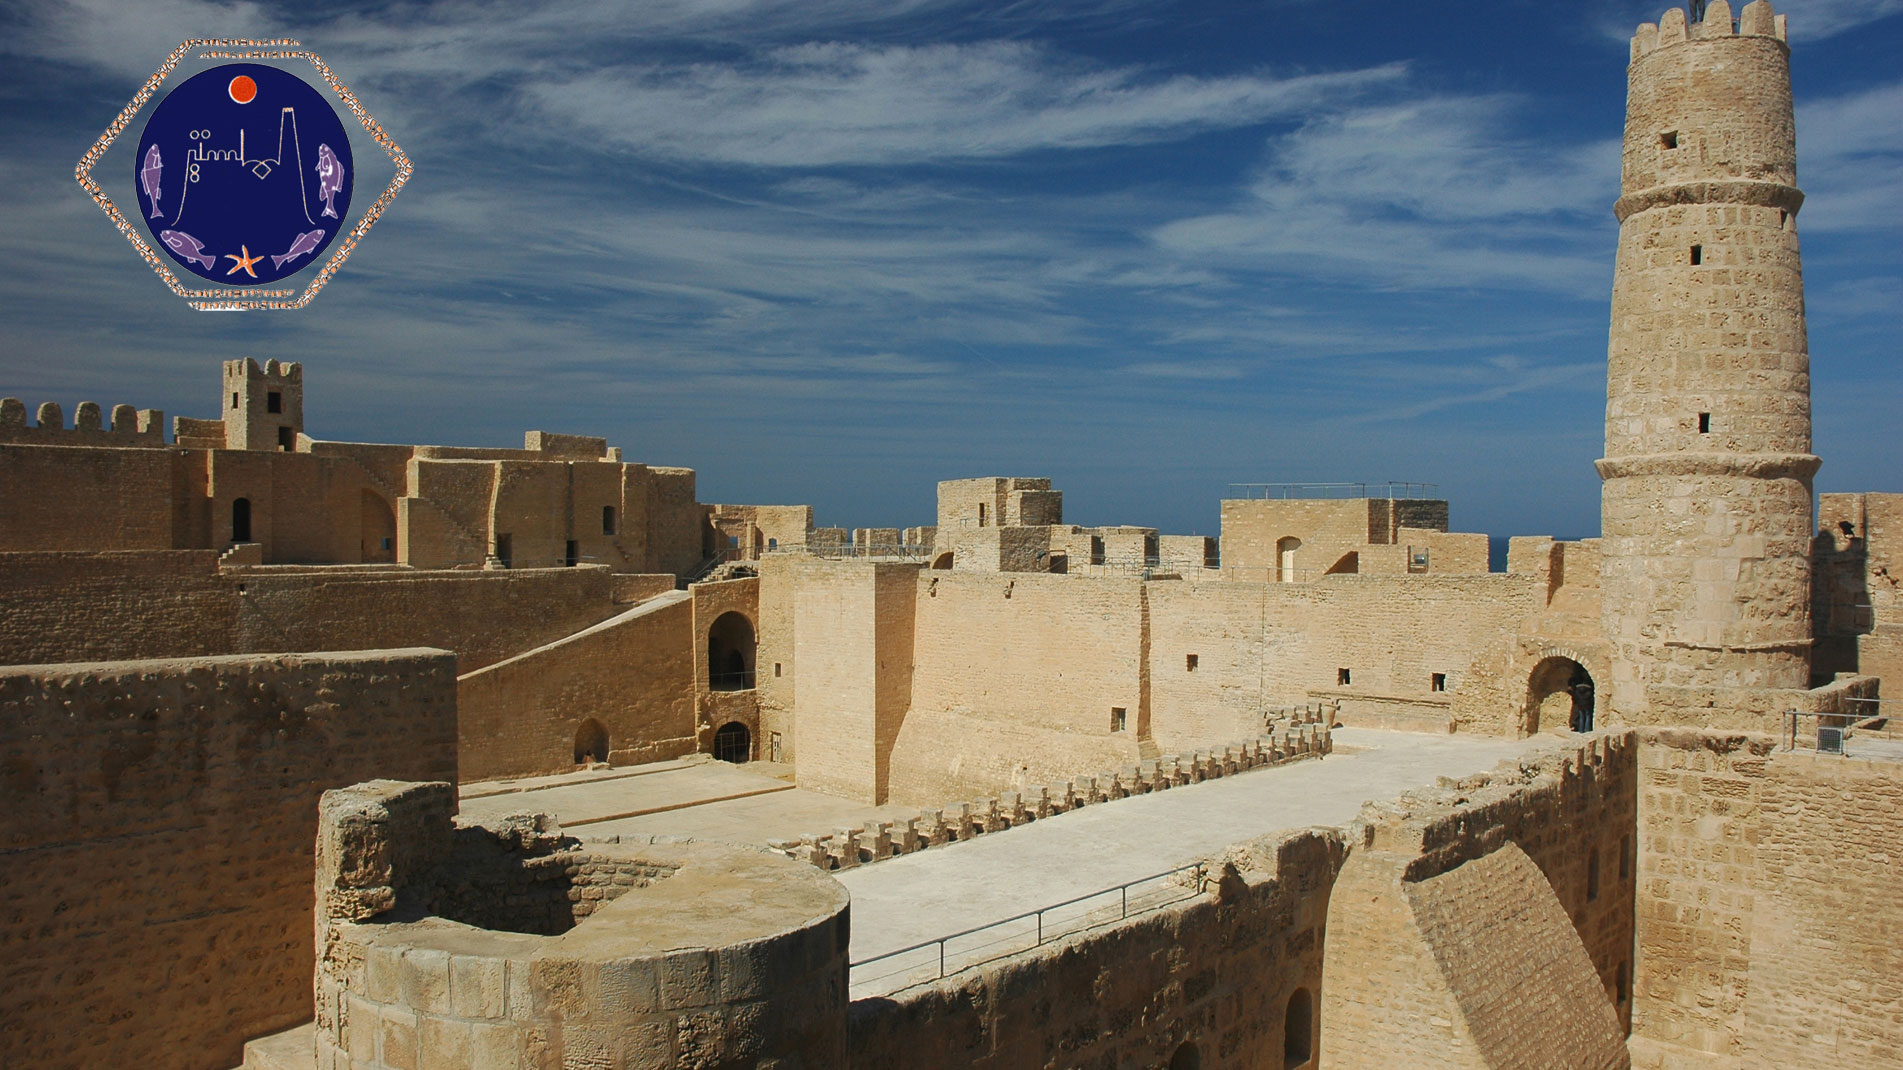 Tunisian imposing fortress located on the edge of the Mediterranean Sea